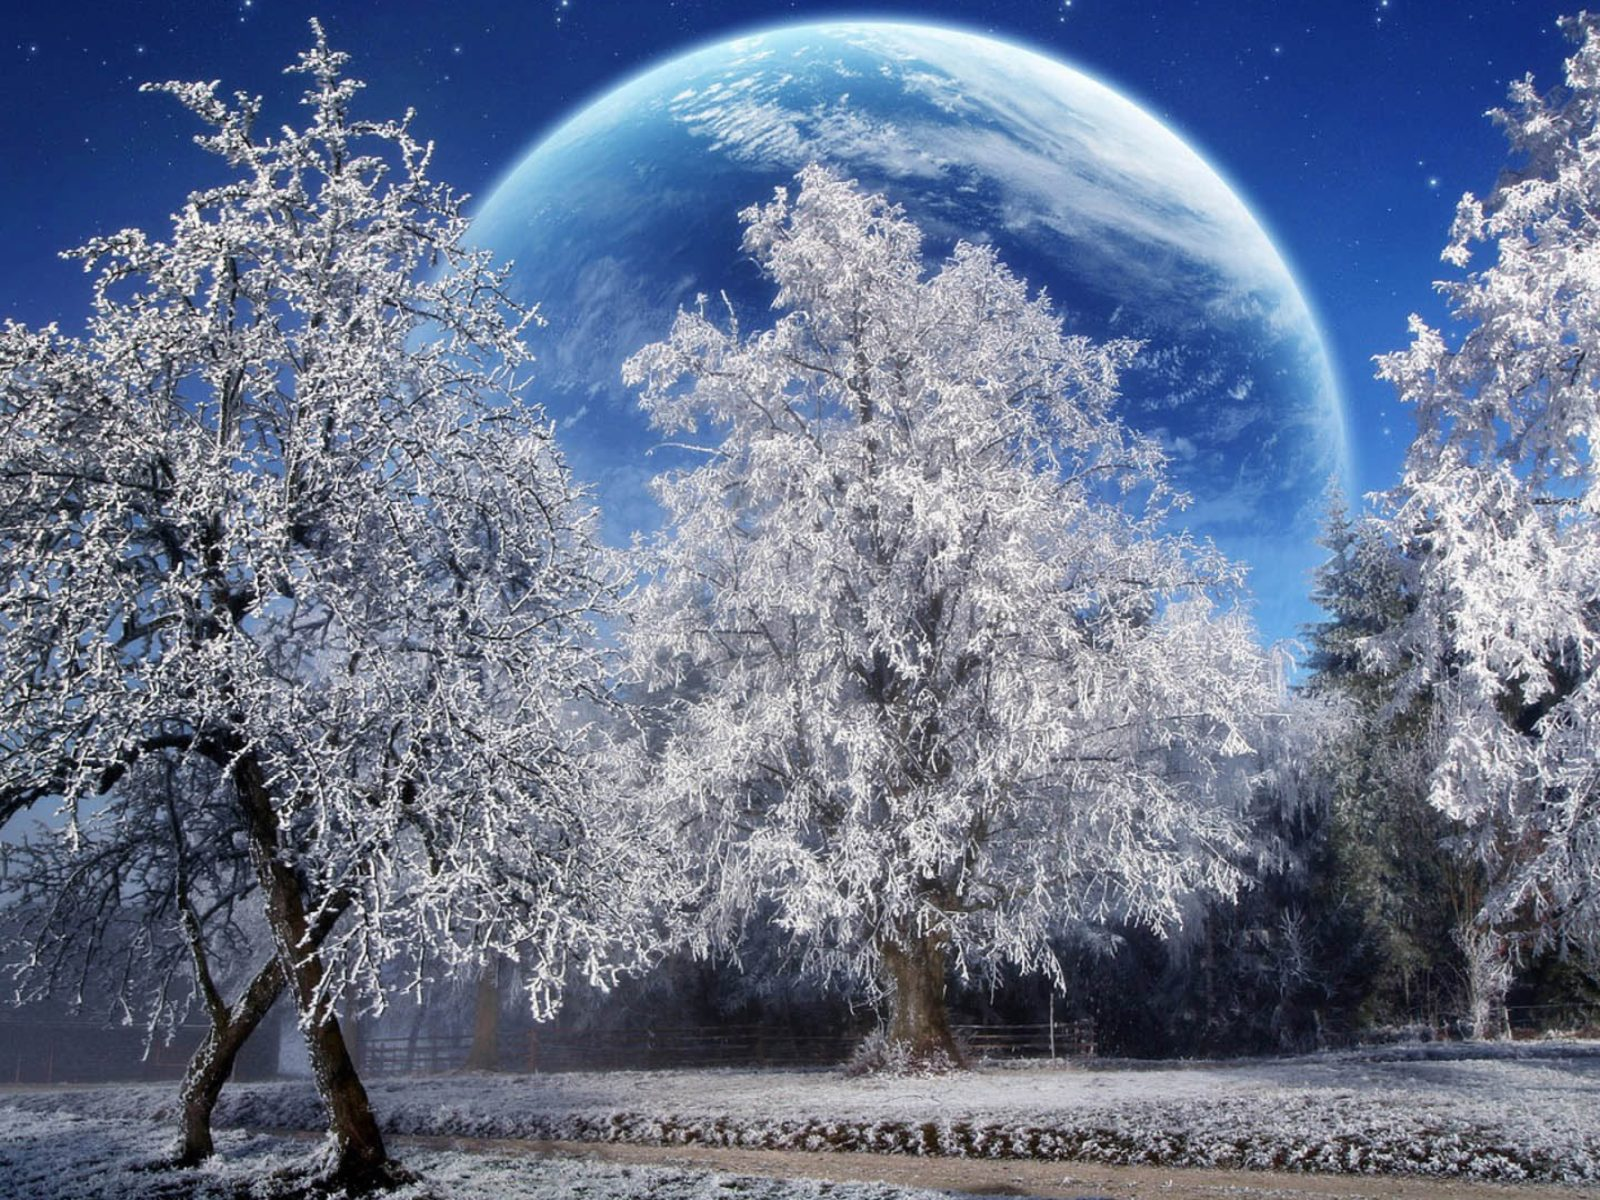 Snow Falling Wallpaper Hd Winter Snow Full Moon High Resolution Hd Wallpapers